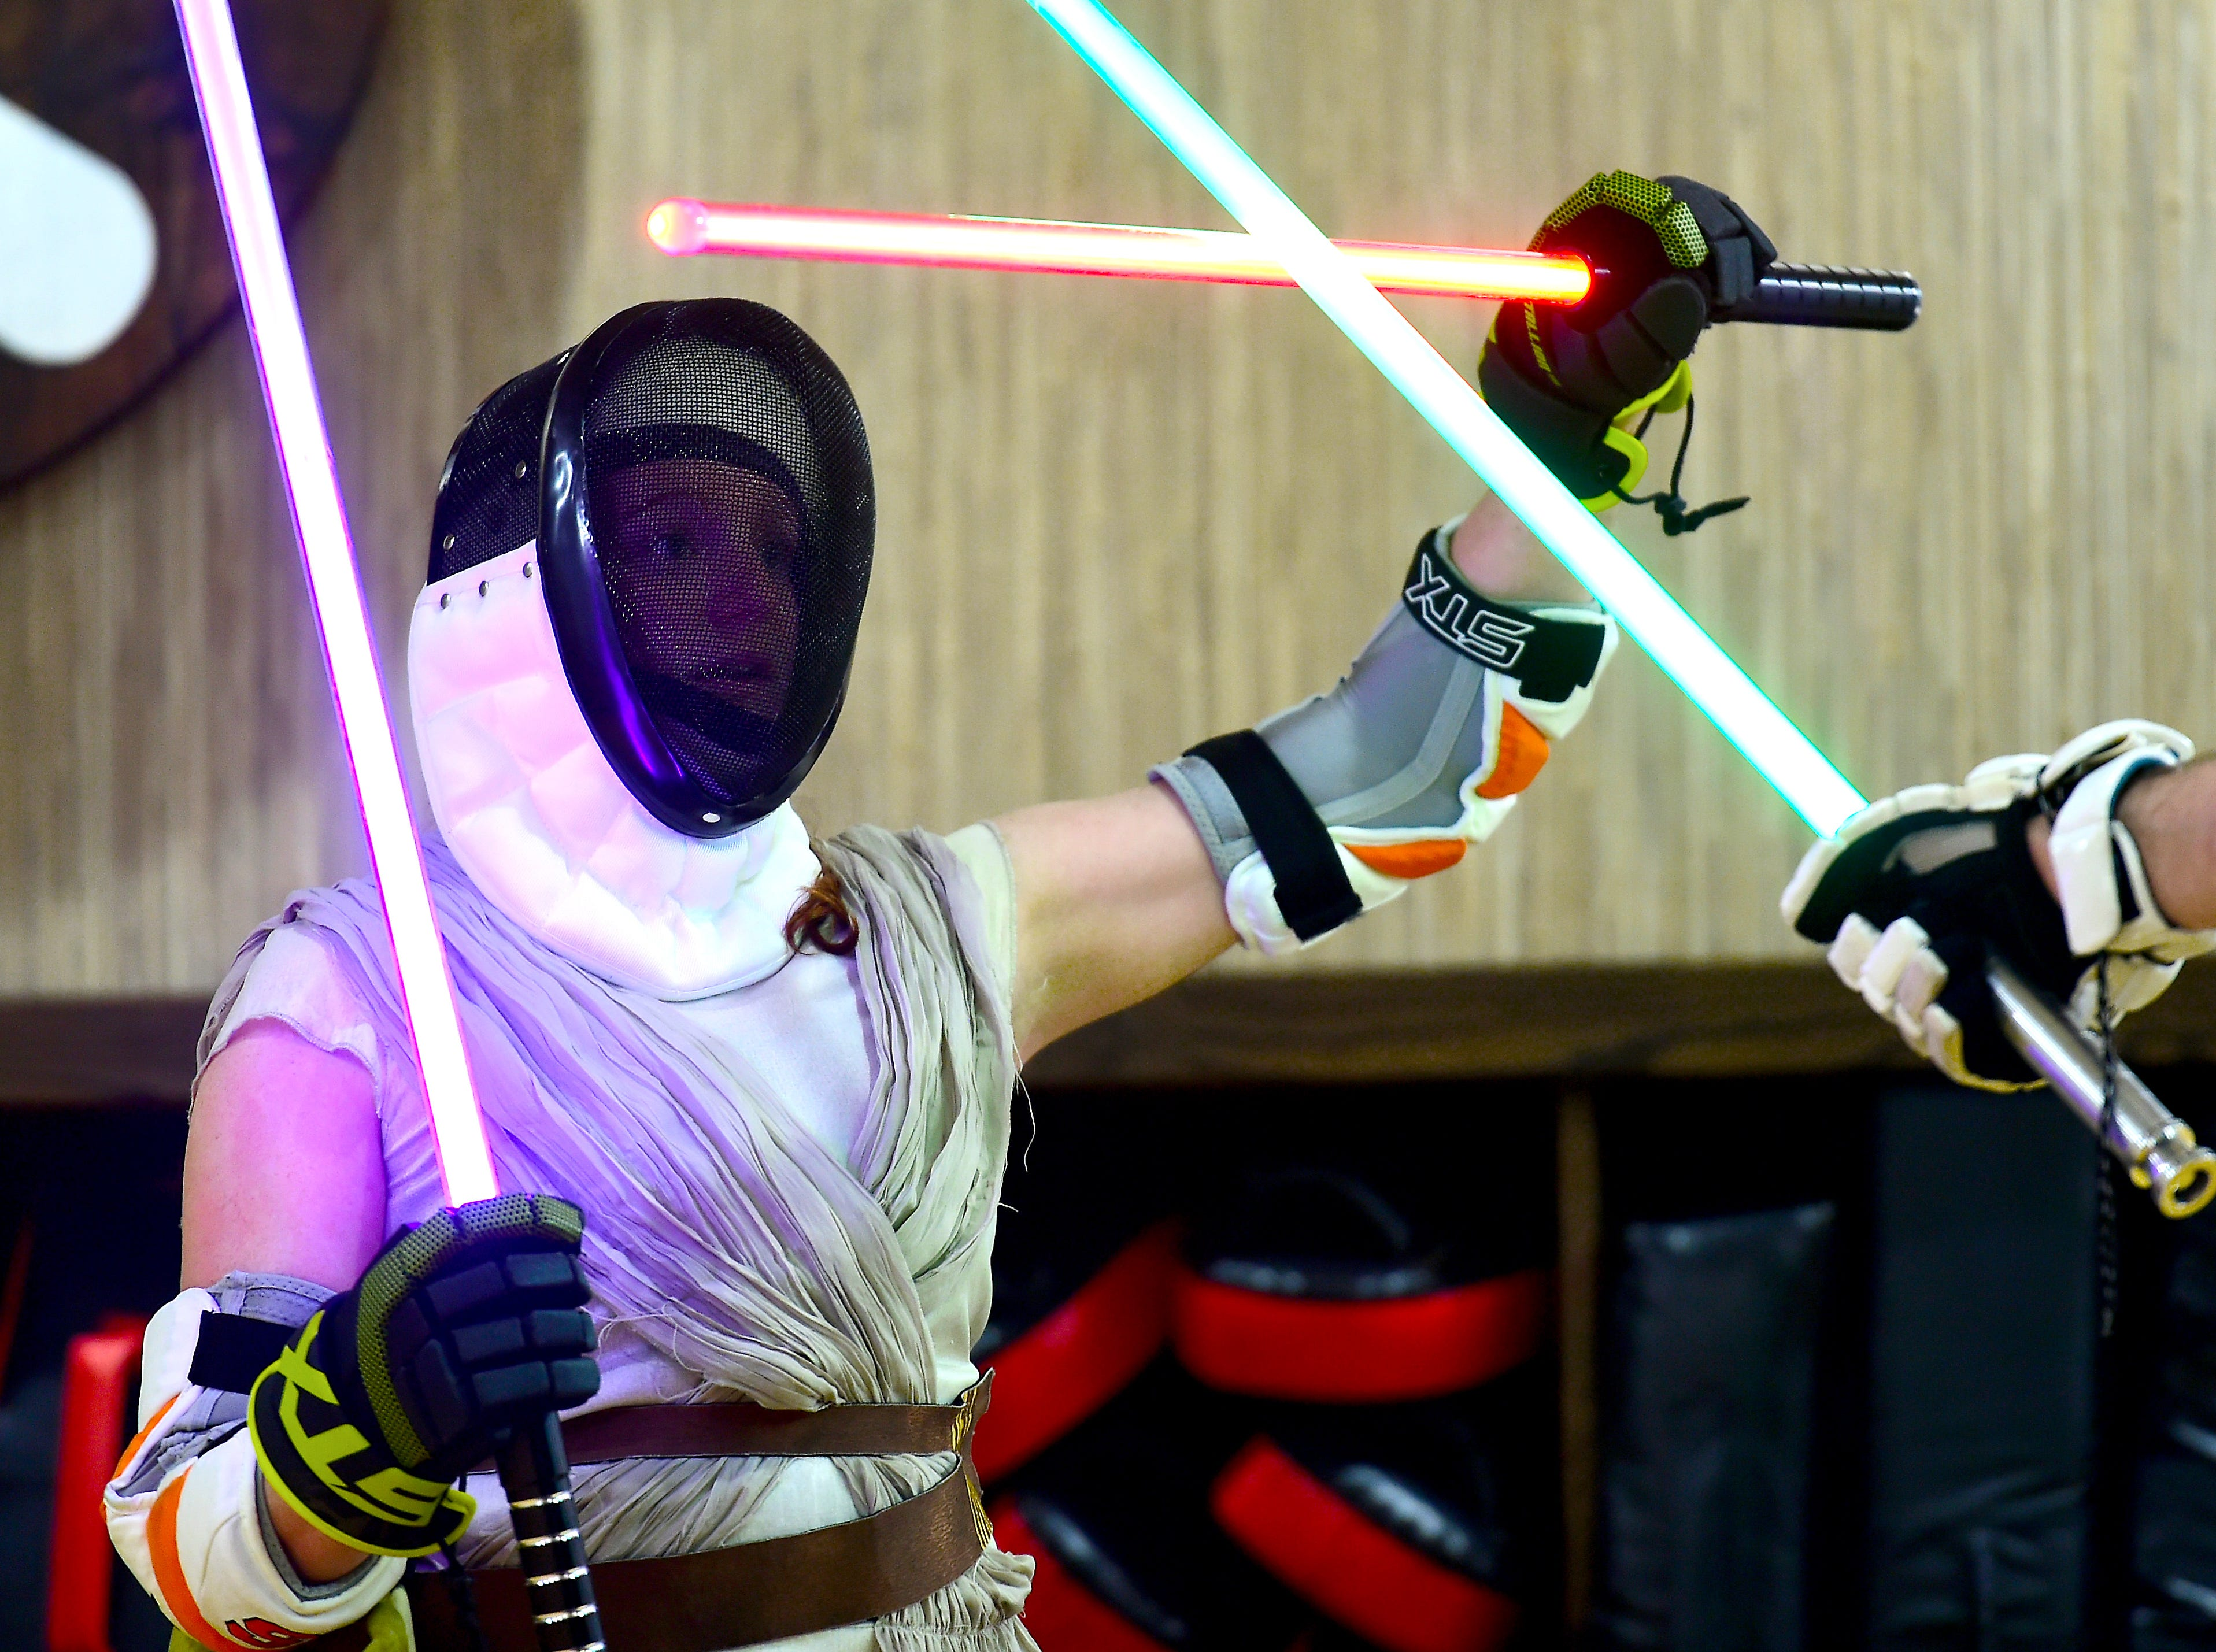 Sarah Ridenour of Danby during the group's weekly lightsaber combat session at Centerline Fitness & Martial Arts in Ithaca.  February 4, 2019.